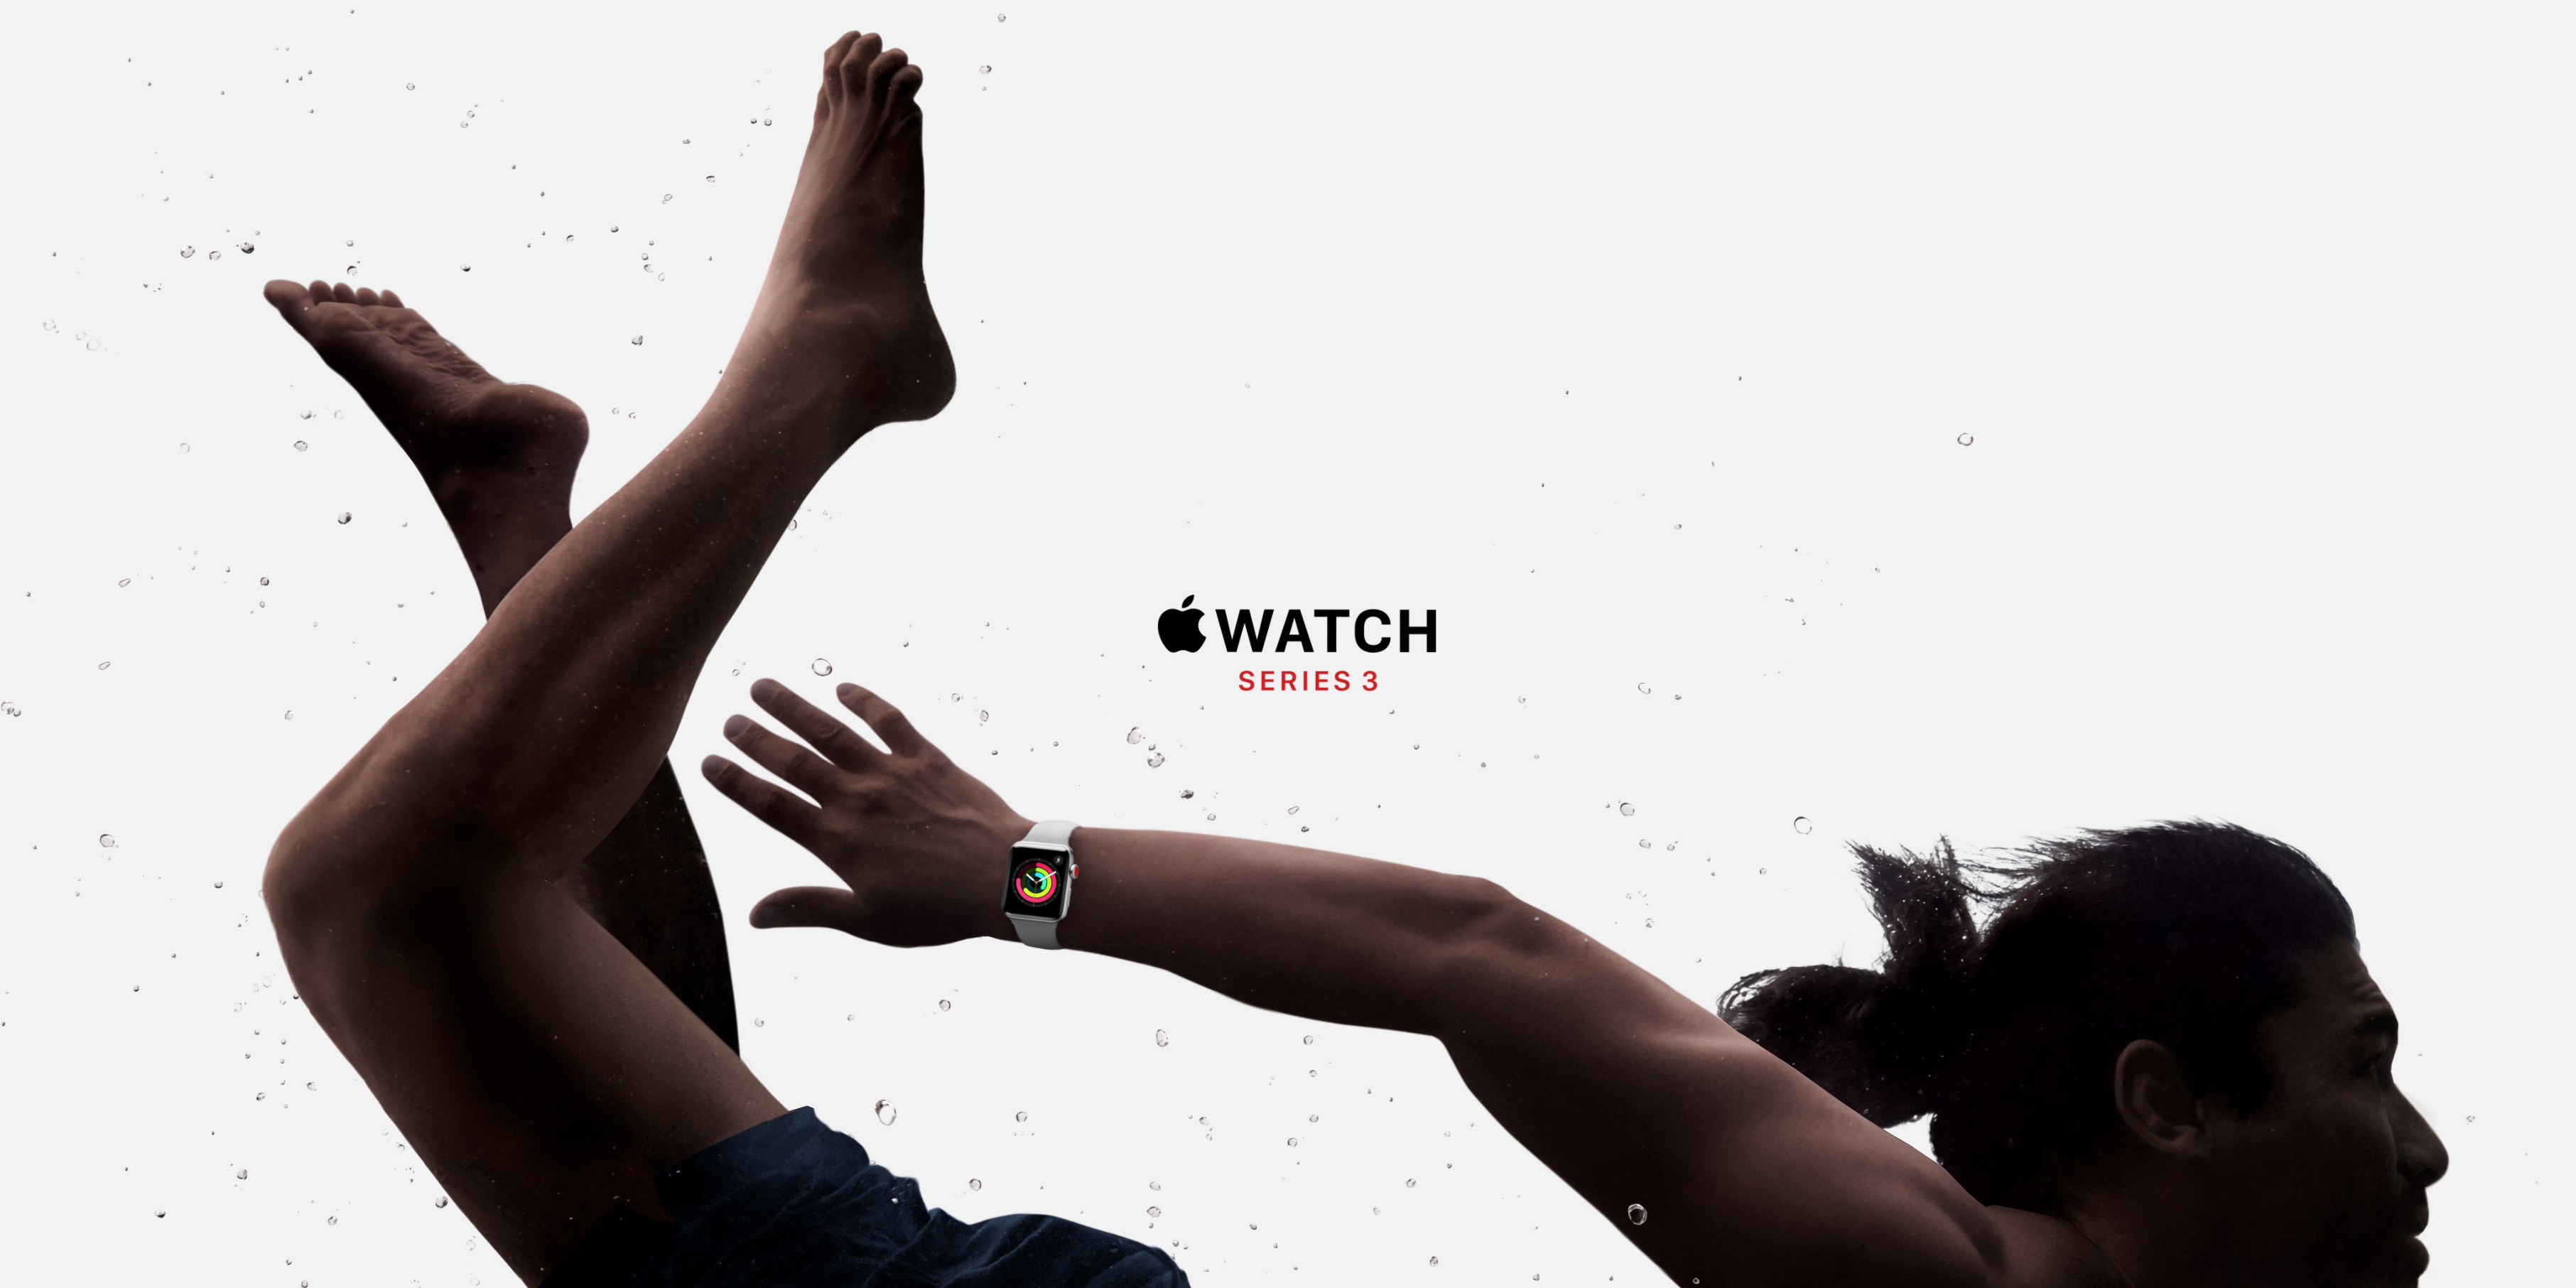 Apple Watch Series 3 is on sale from $218.50 at various retailers (Reg. $279+)